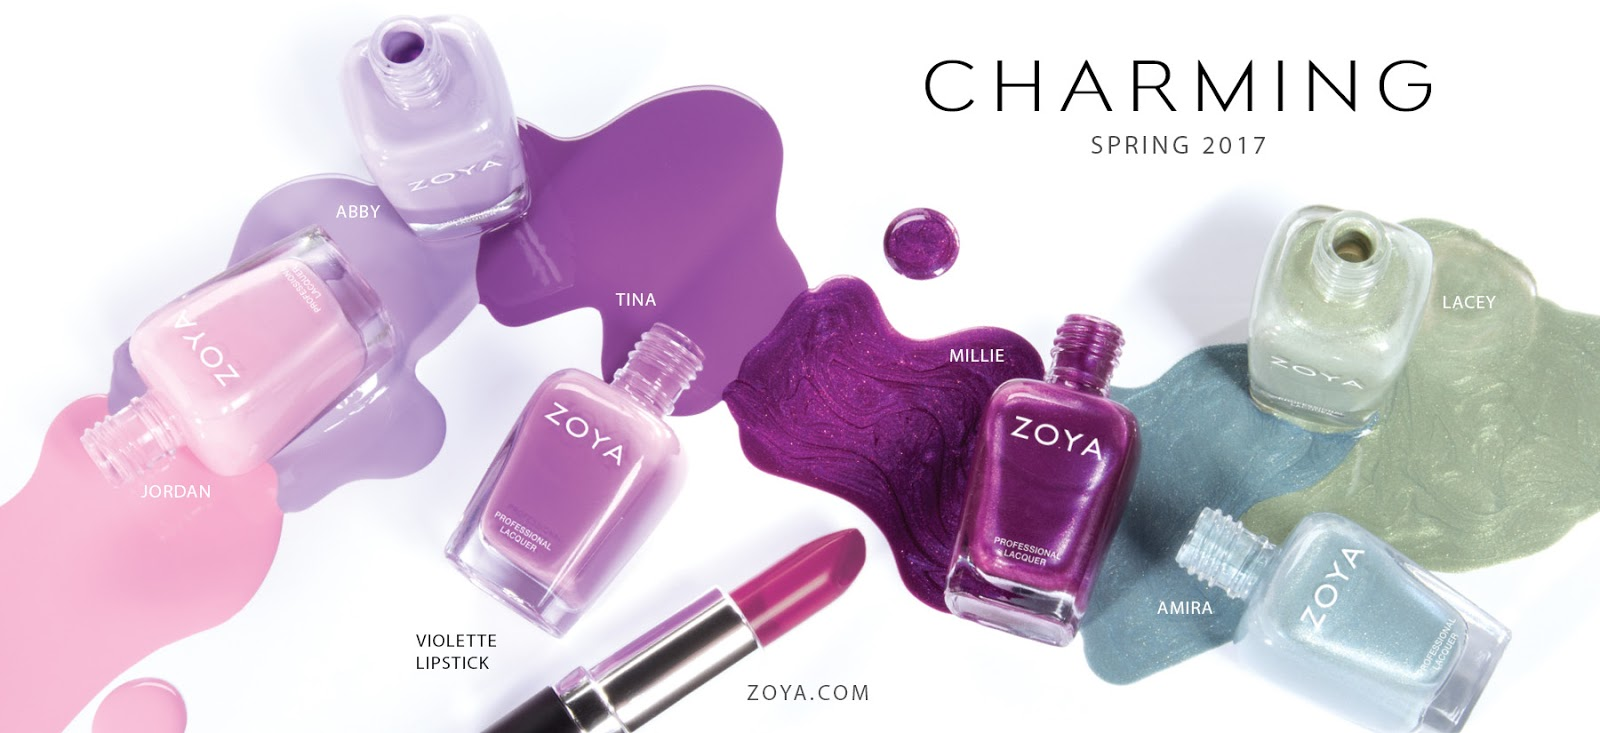 ehmkay nails: Press Release: Zoya Charming for Spring 2017